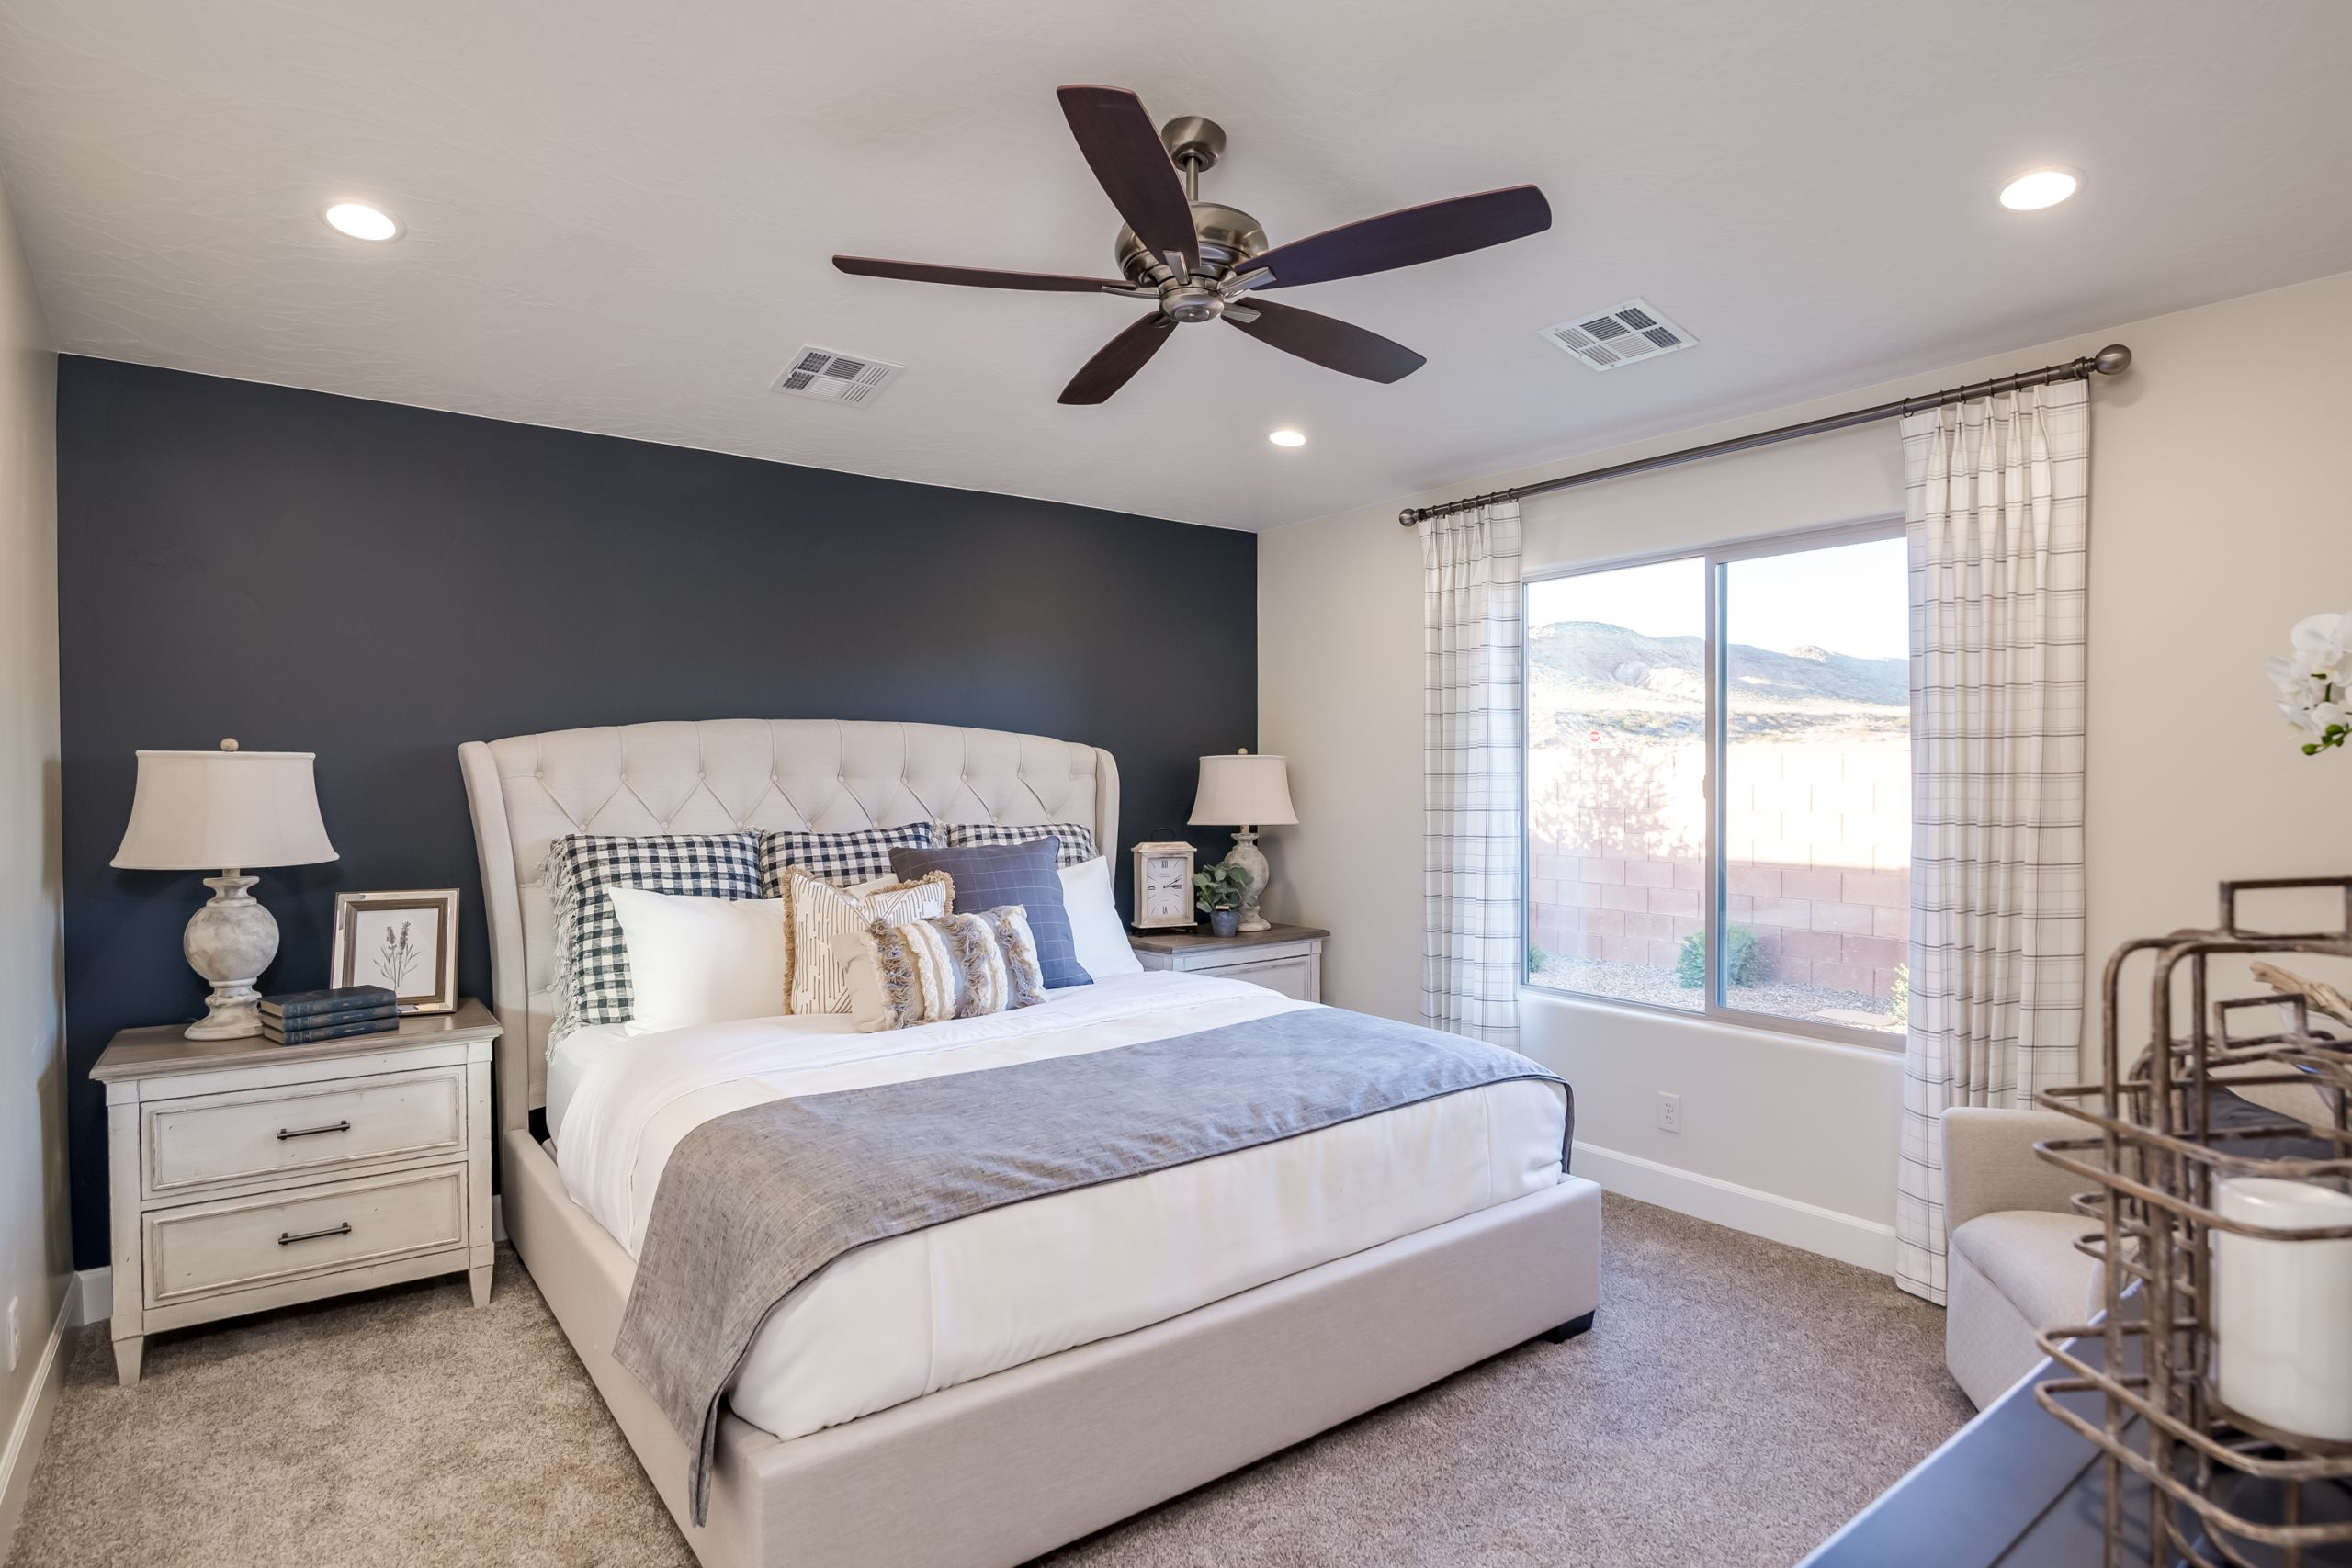 Bedroom featured in the Red Waters Plan 1872 By Ence Homes in St. George, UT